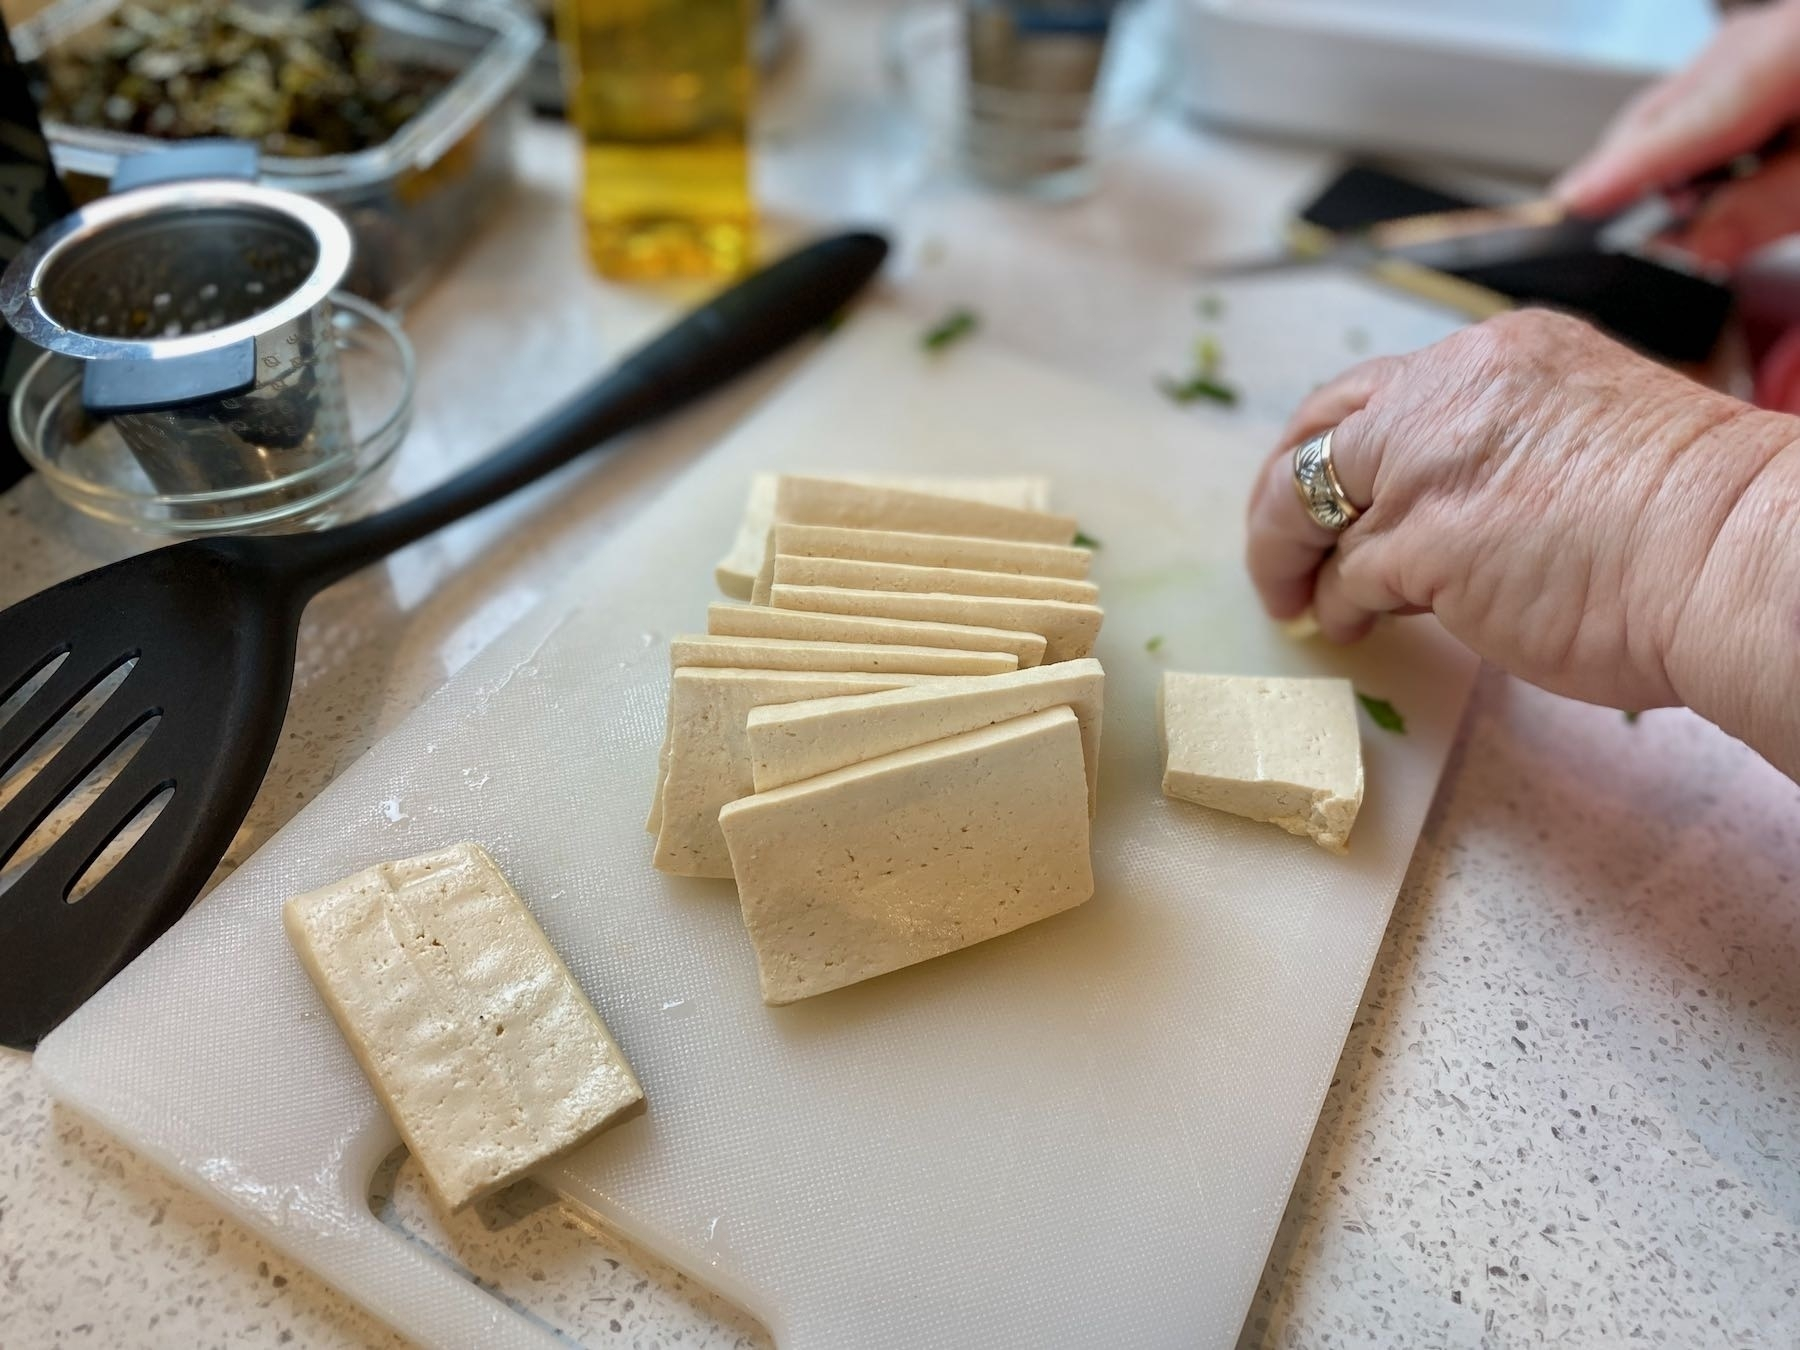 Tofu being sliced on a board.